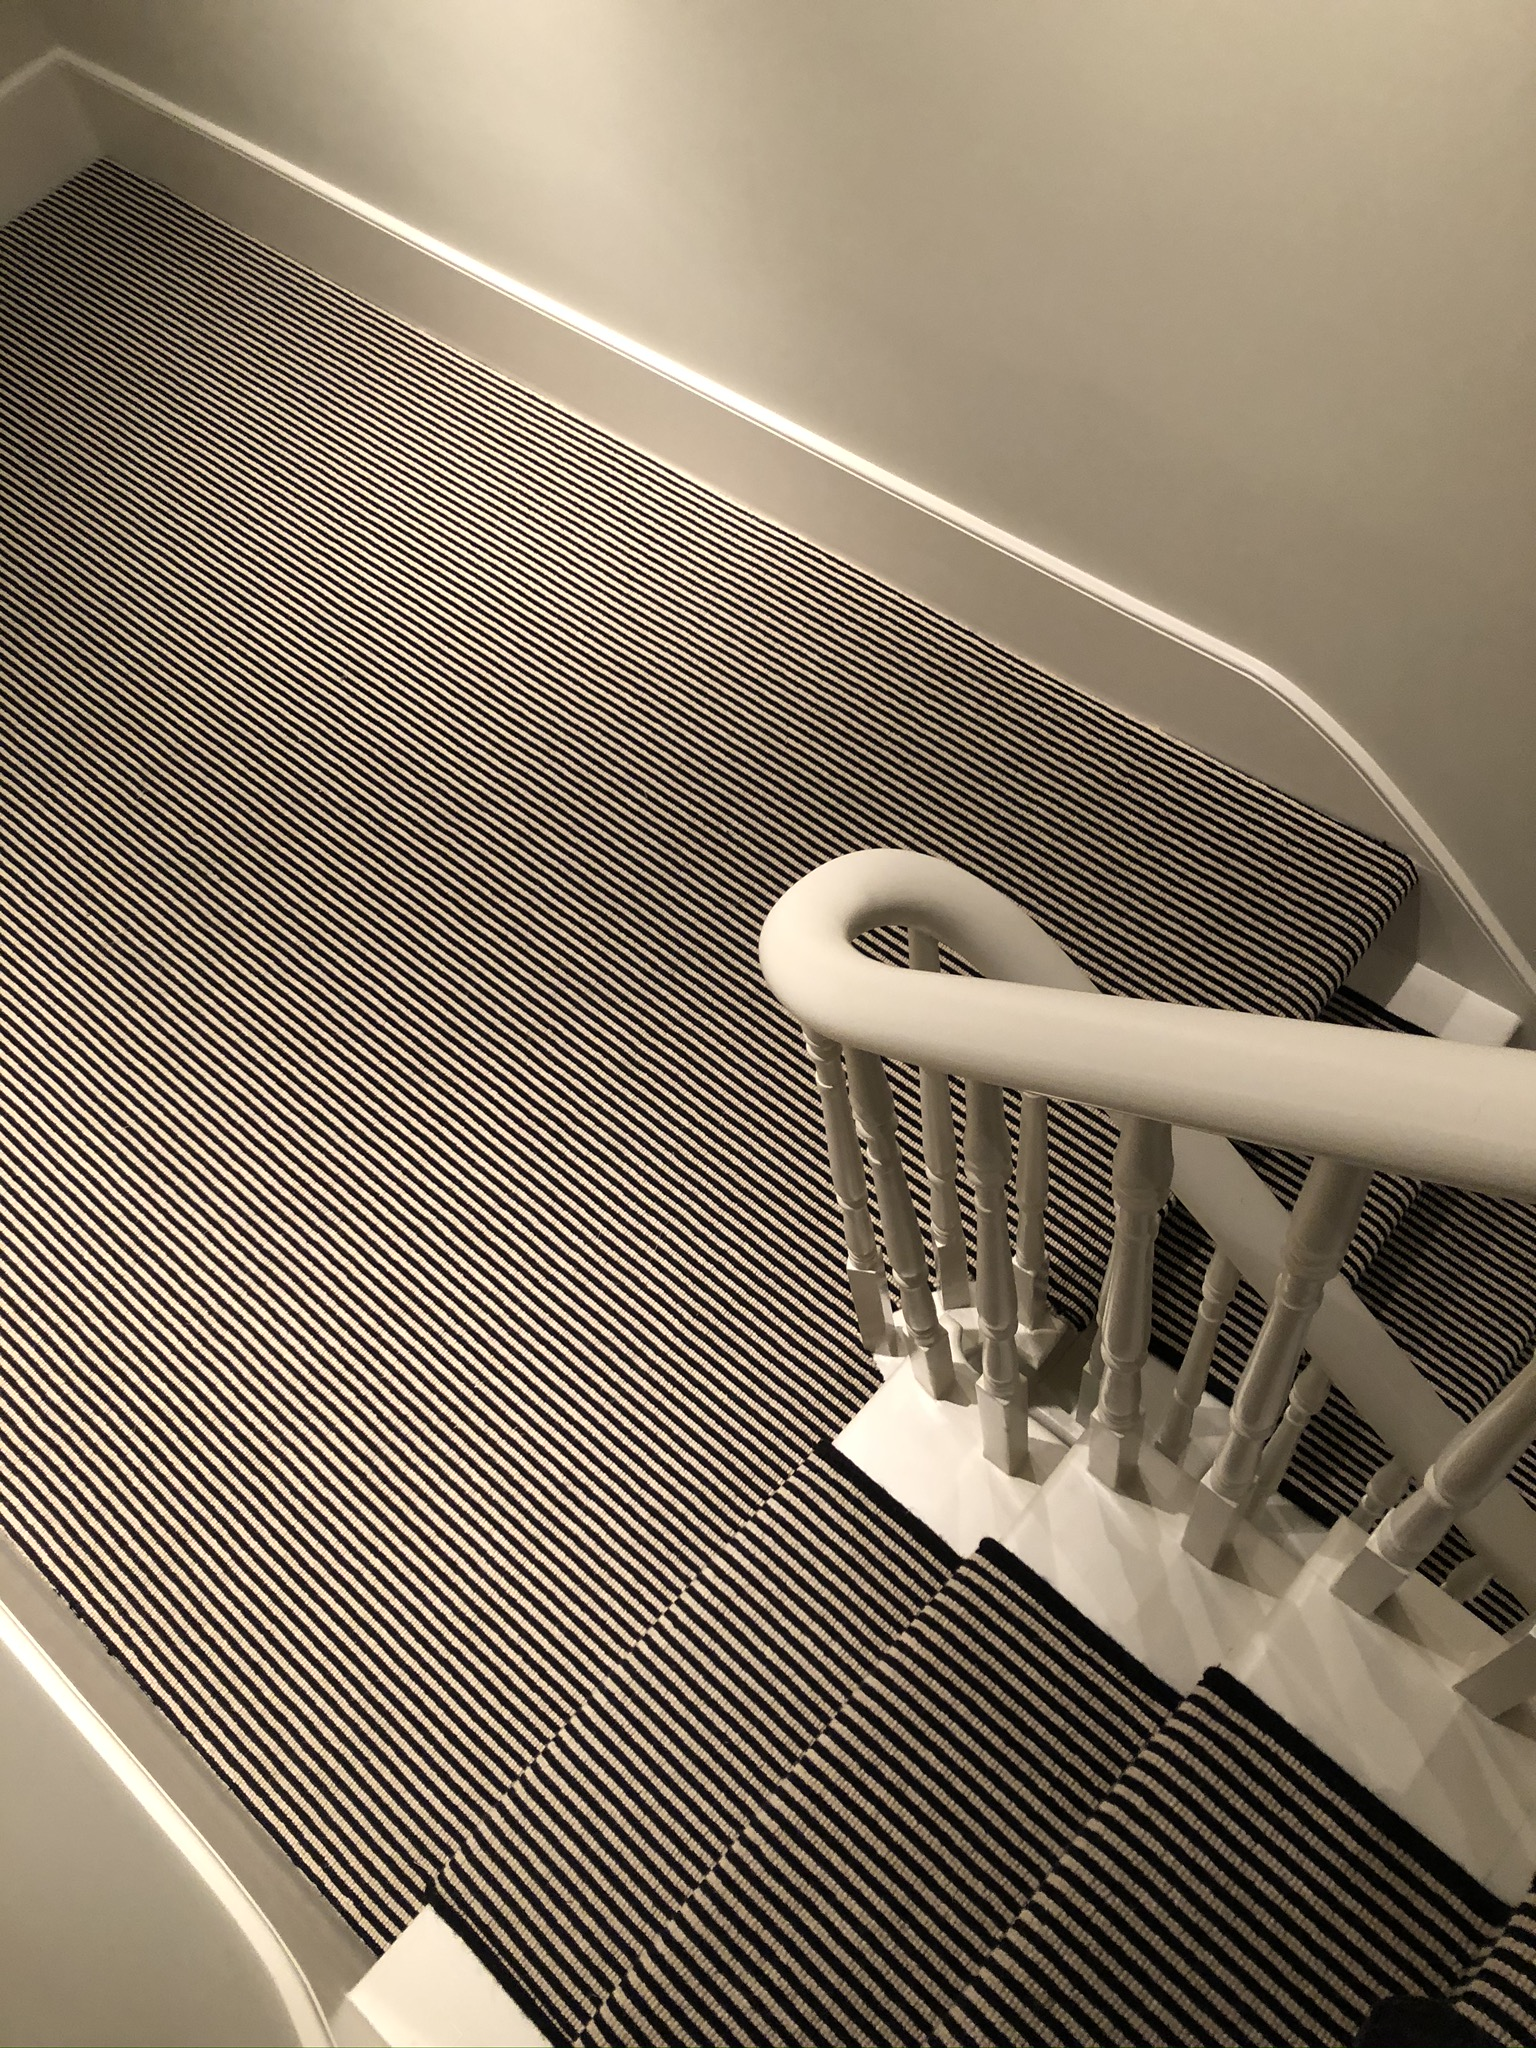 Hugh Mackay Carpets Deco Loop Two-Tone Magpie Black & White Stripe Carpet to Premises in Richmond 3